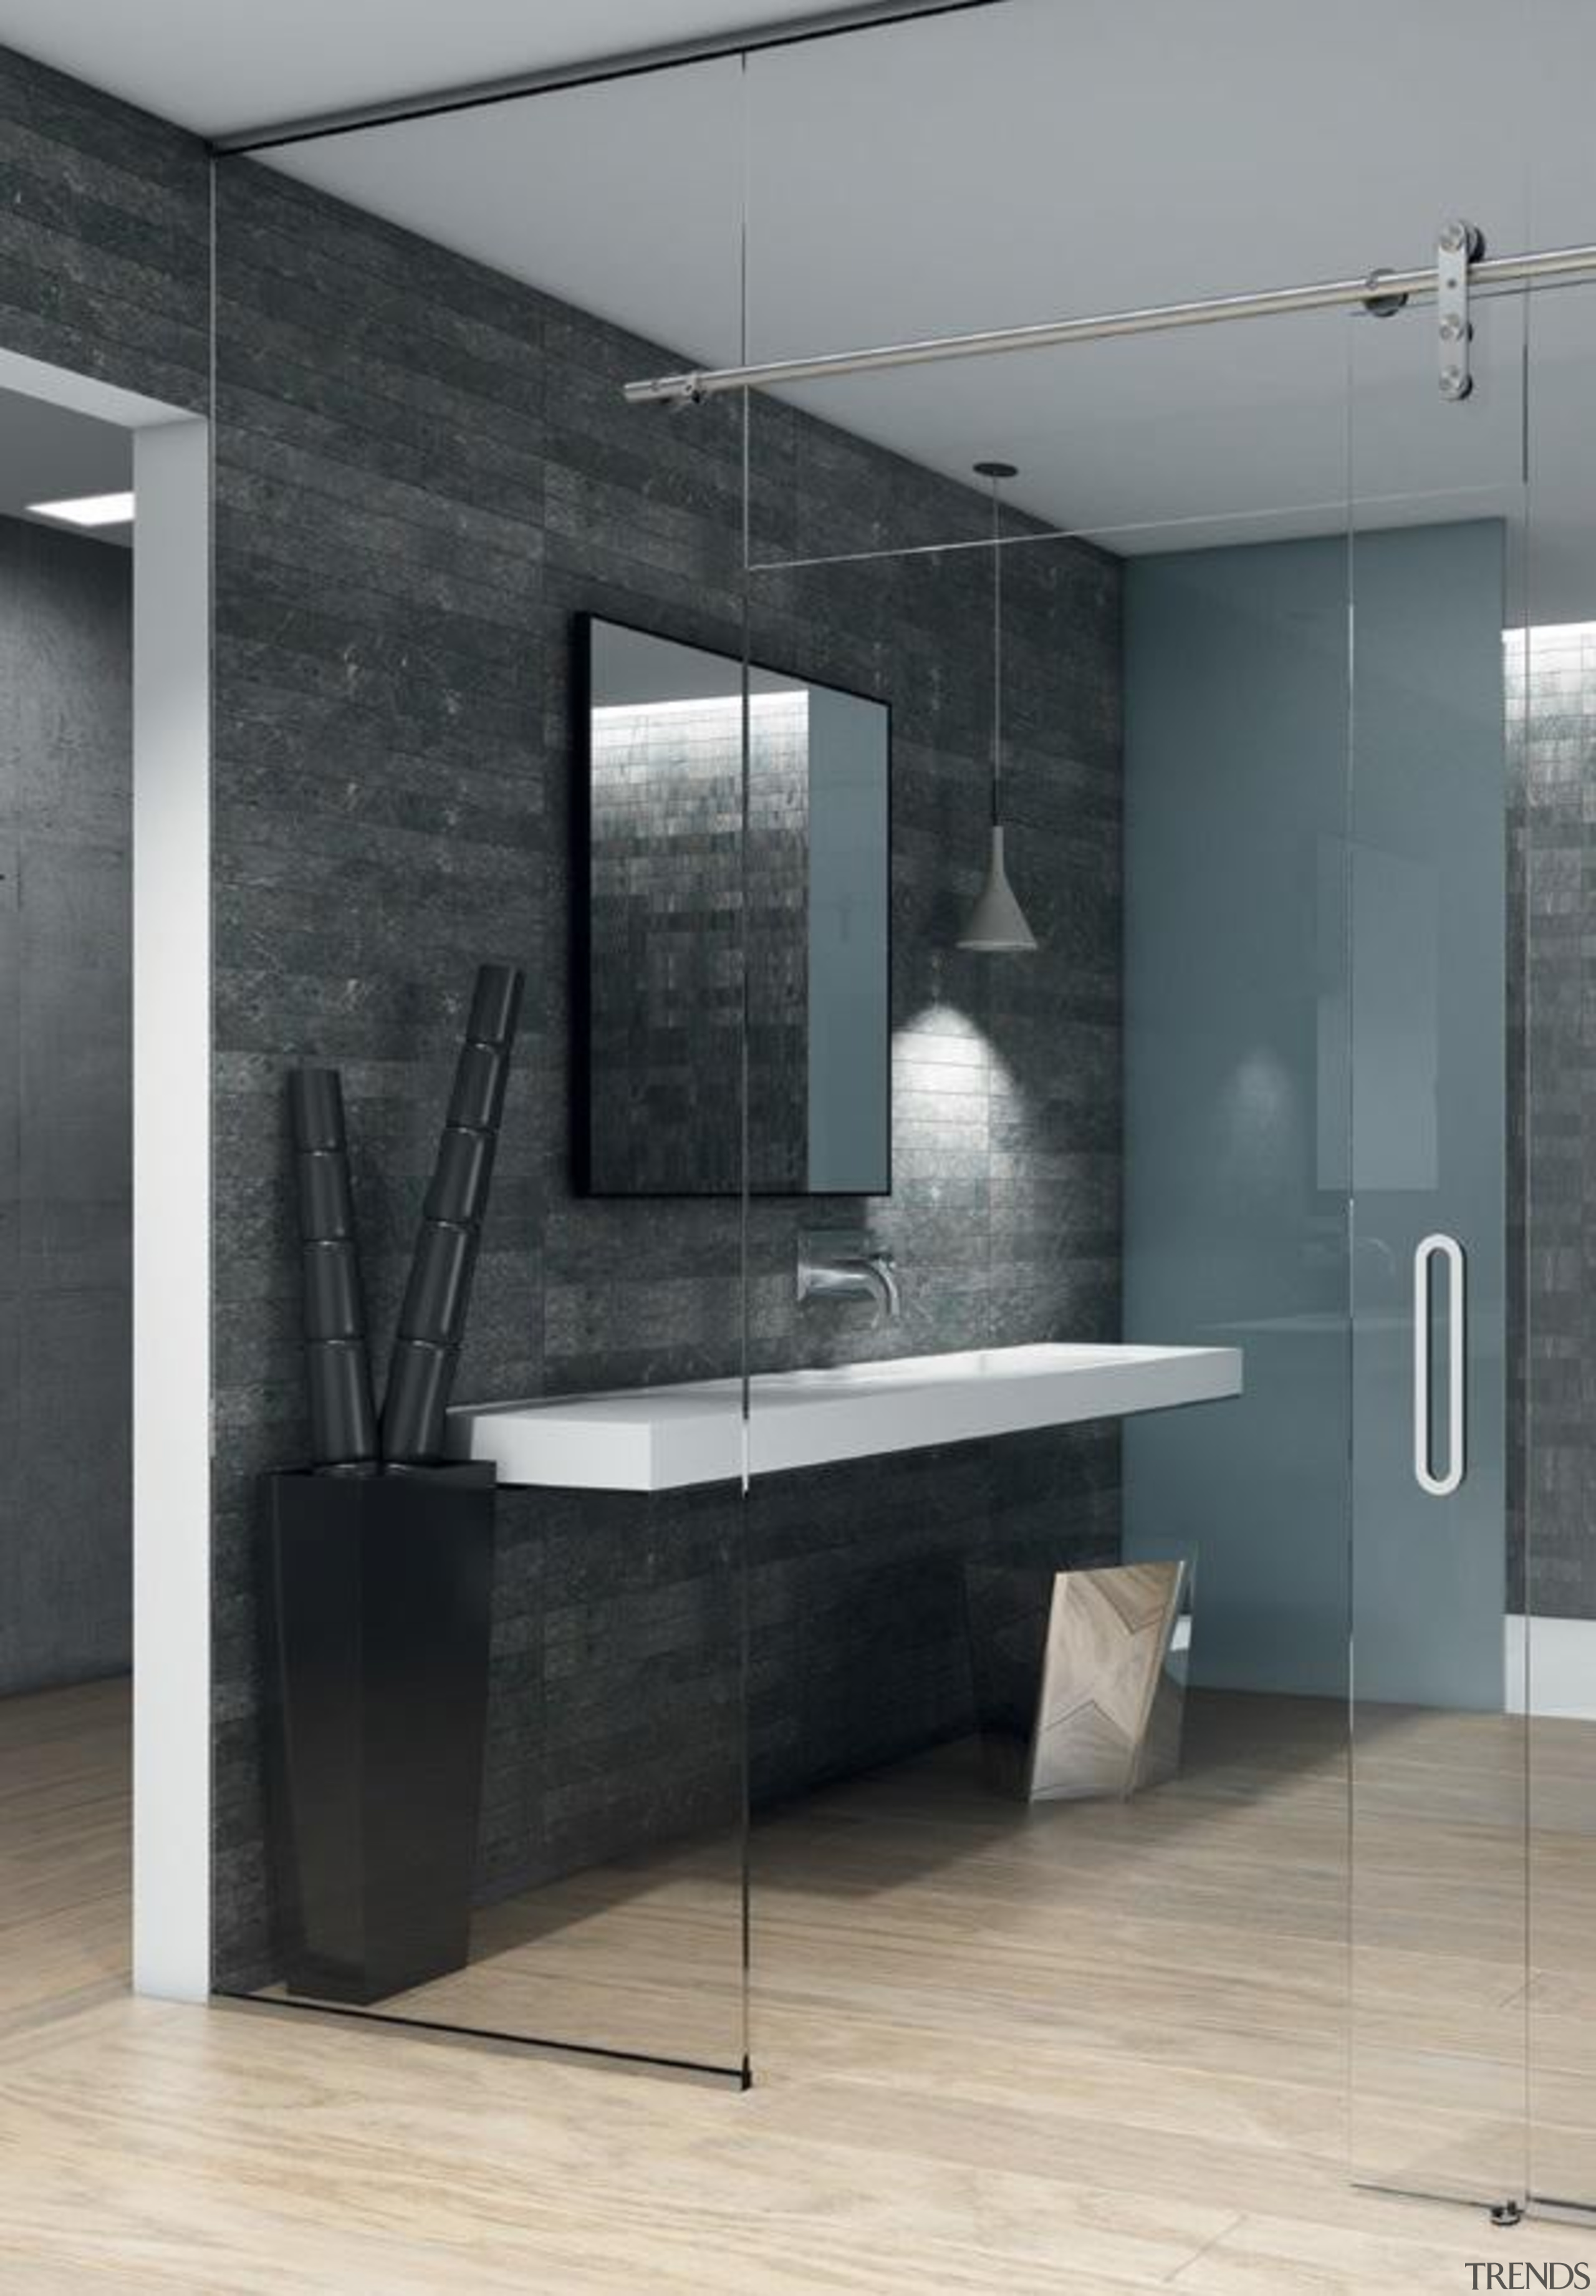 Mardeco International Ltd is an independent privately owned bathroom, floor, flooring, glass, interior design, product design, sink, tap, tile, gray, black